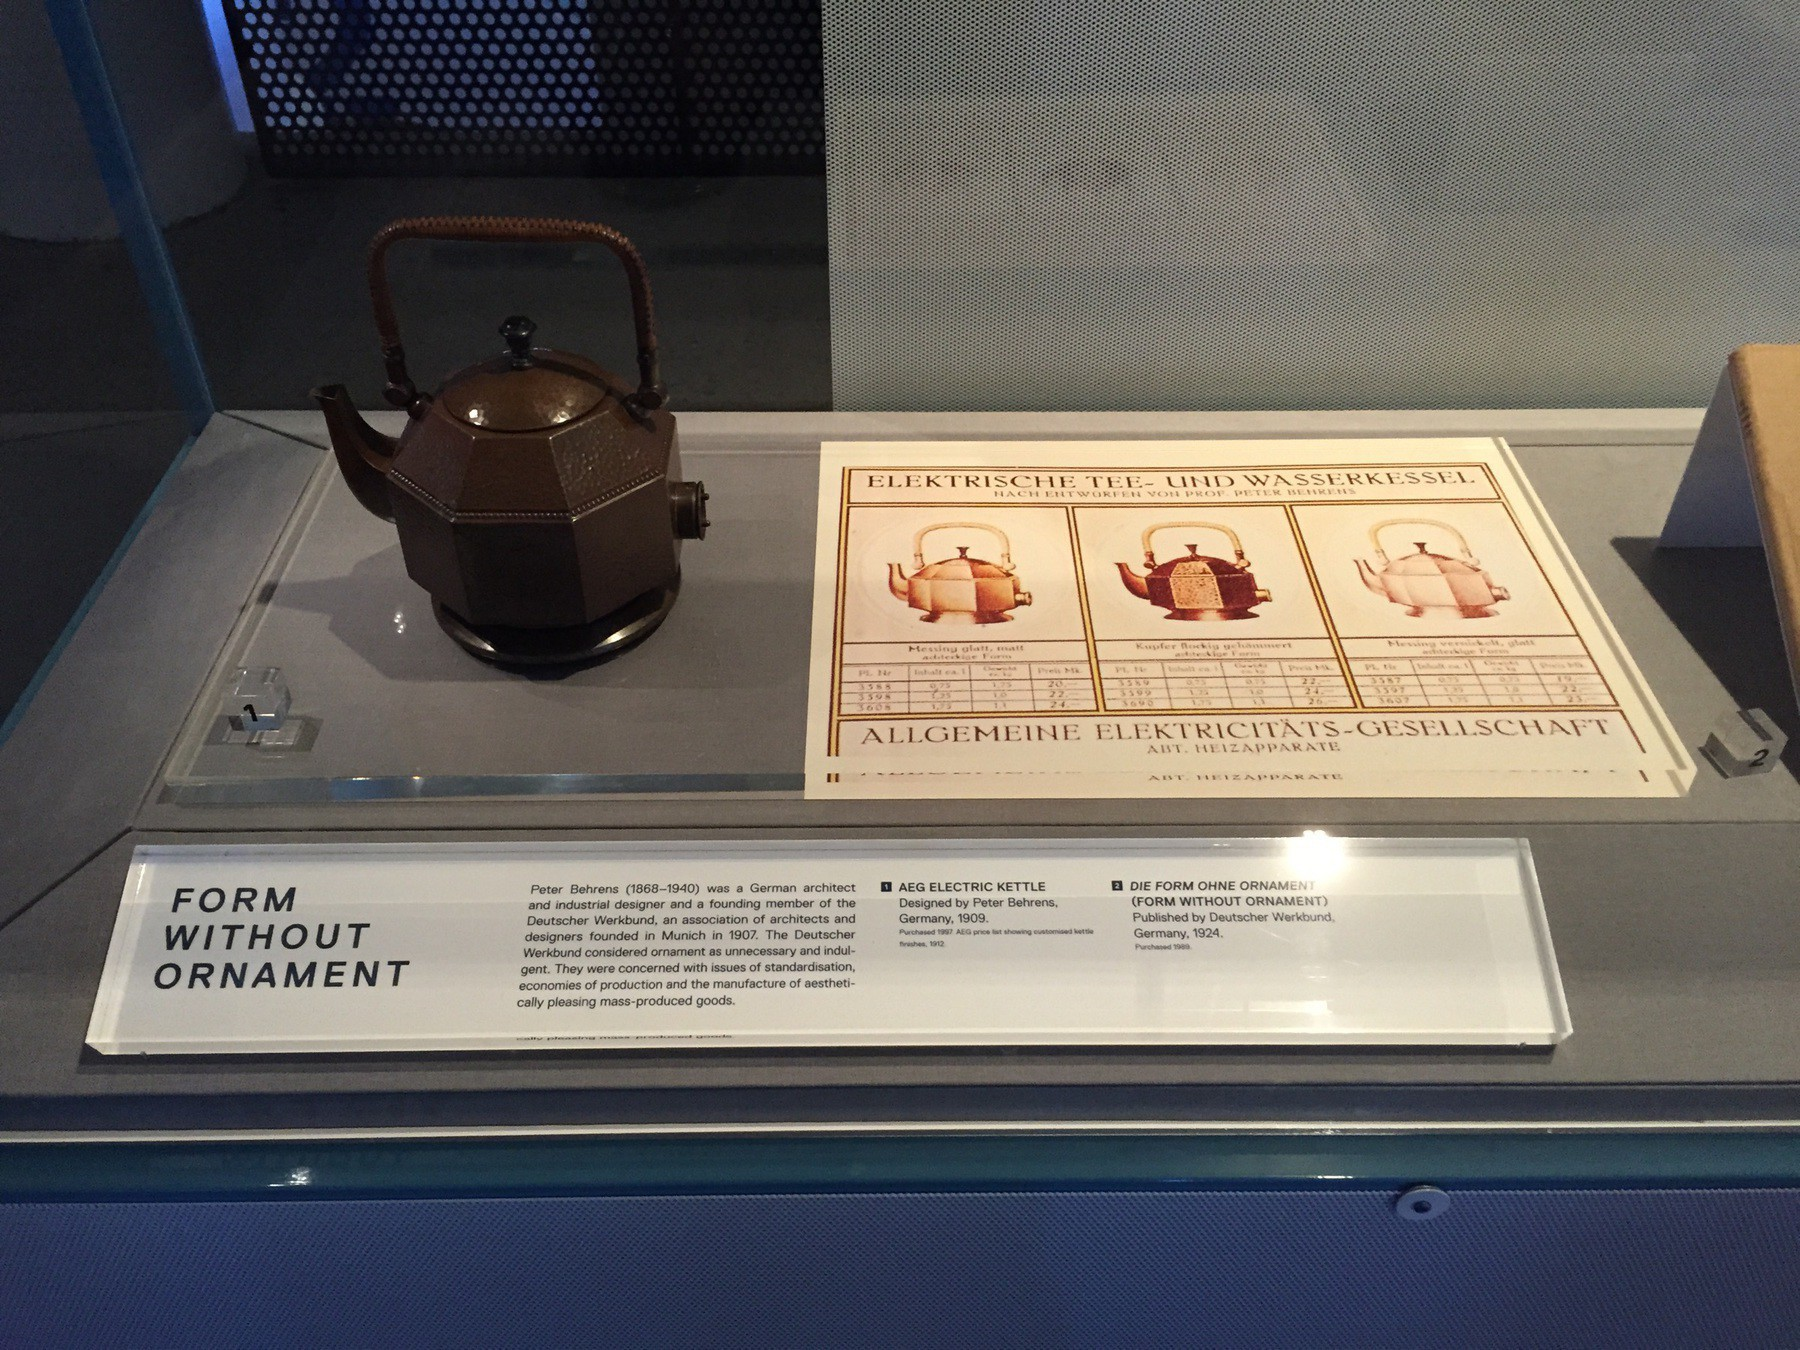 Early German electric water kettle